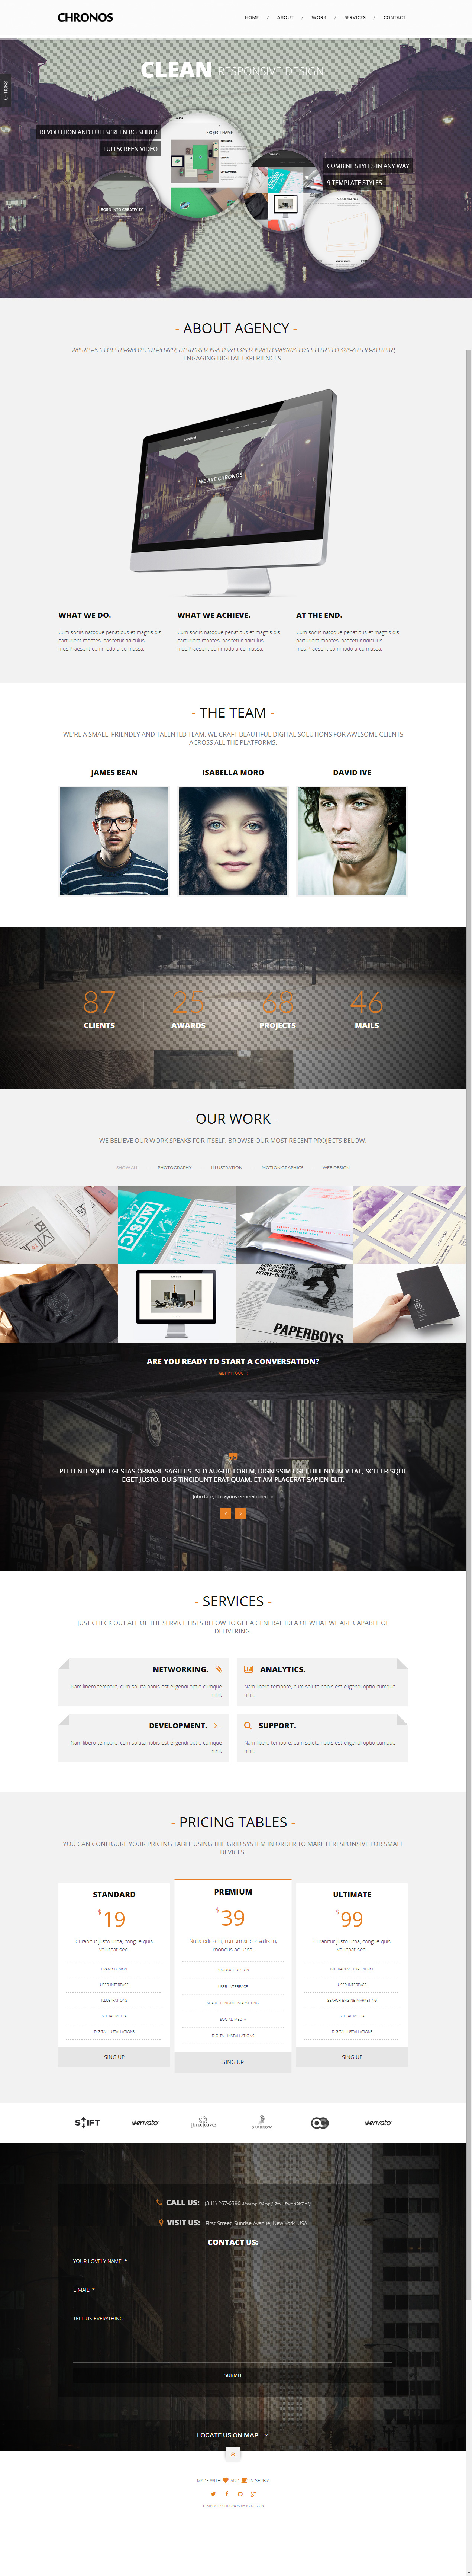 Charming Free Html5 Responsive Template Ideas - Professional Resume ...